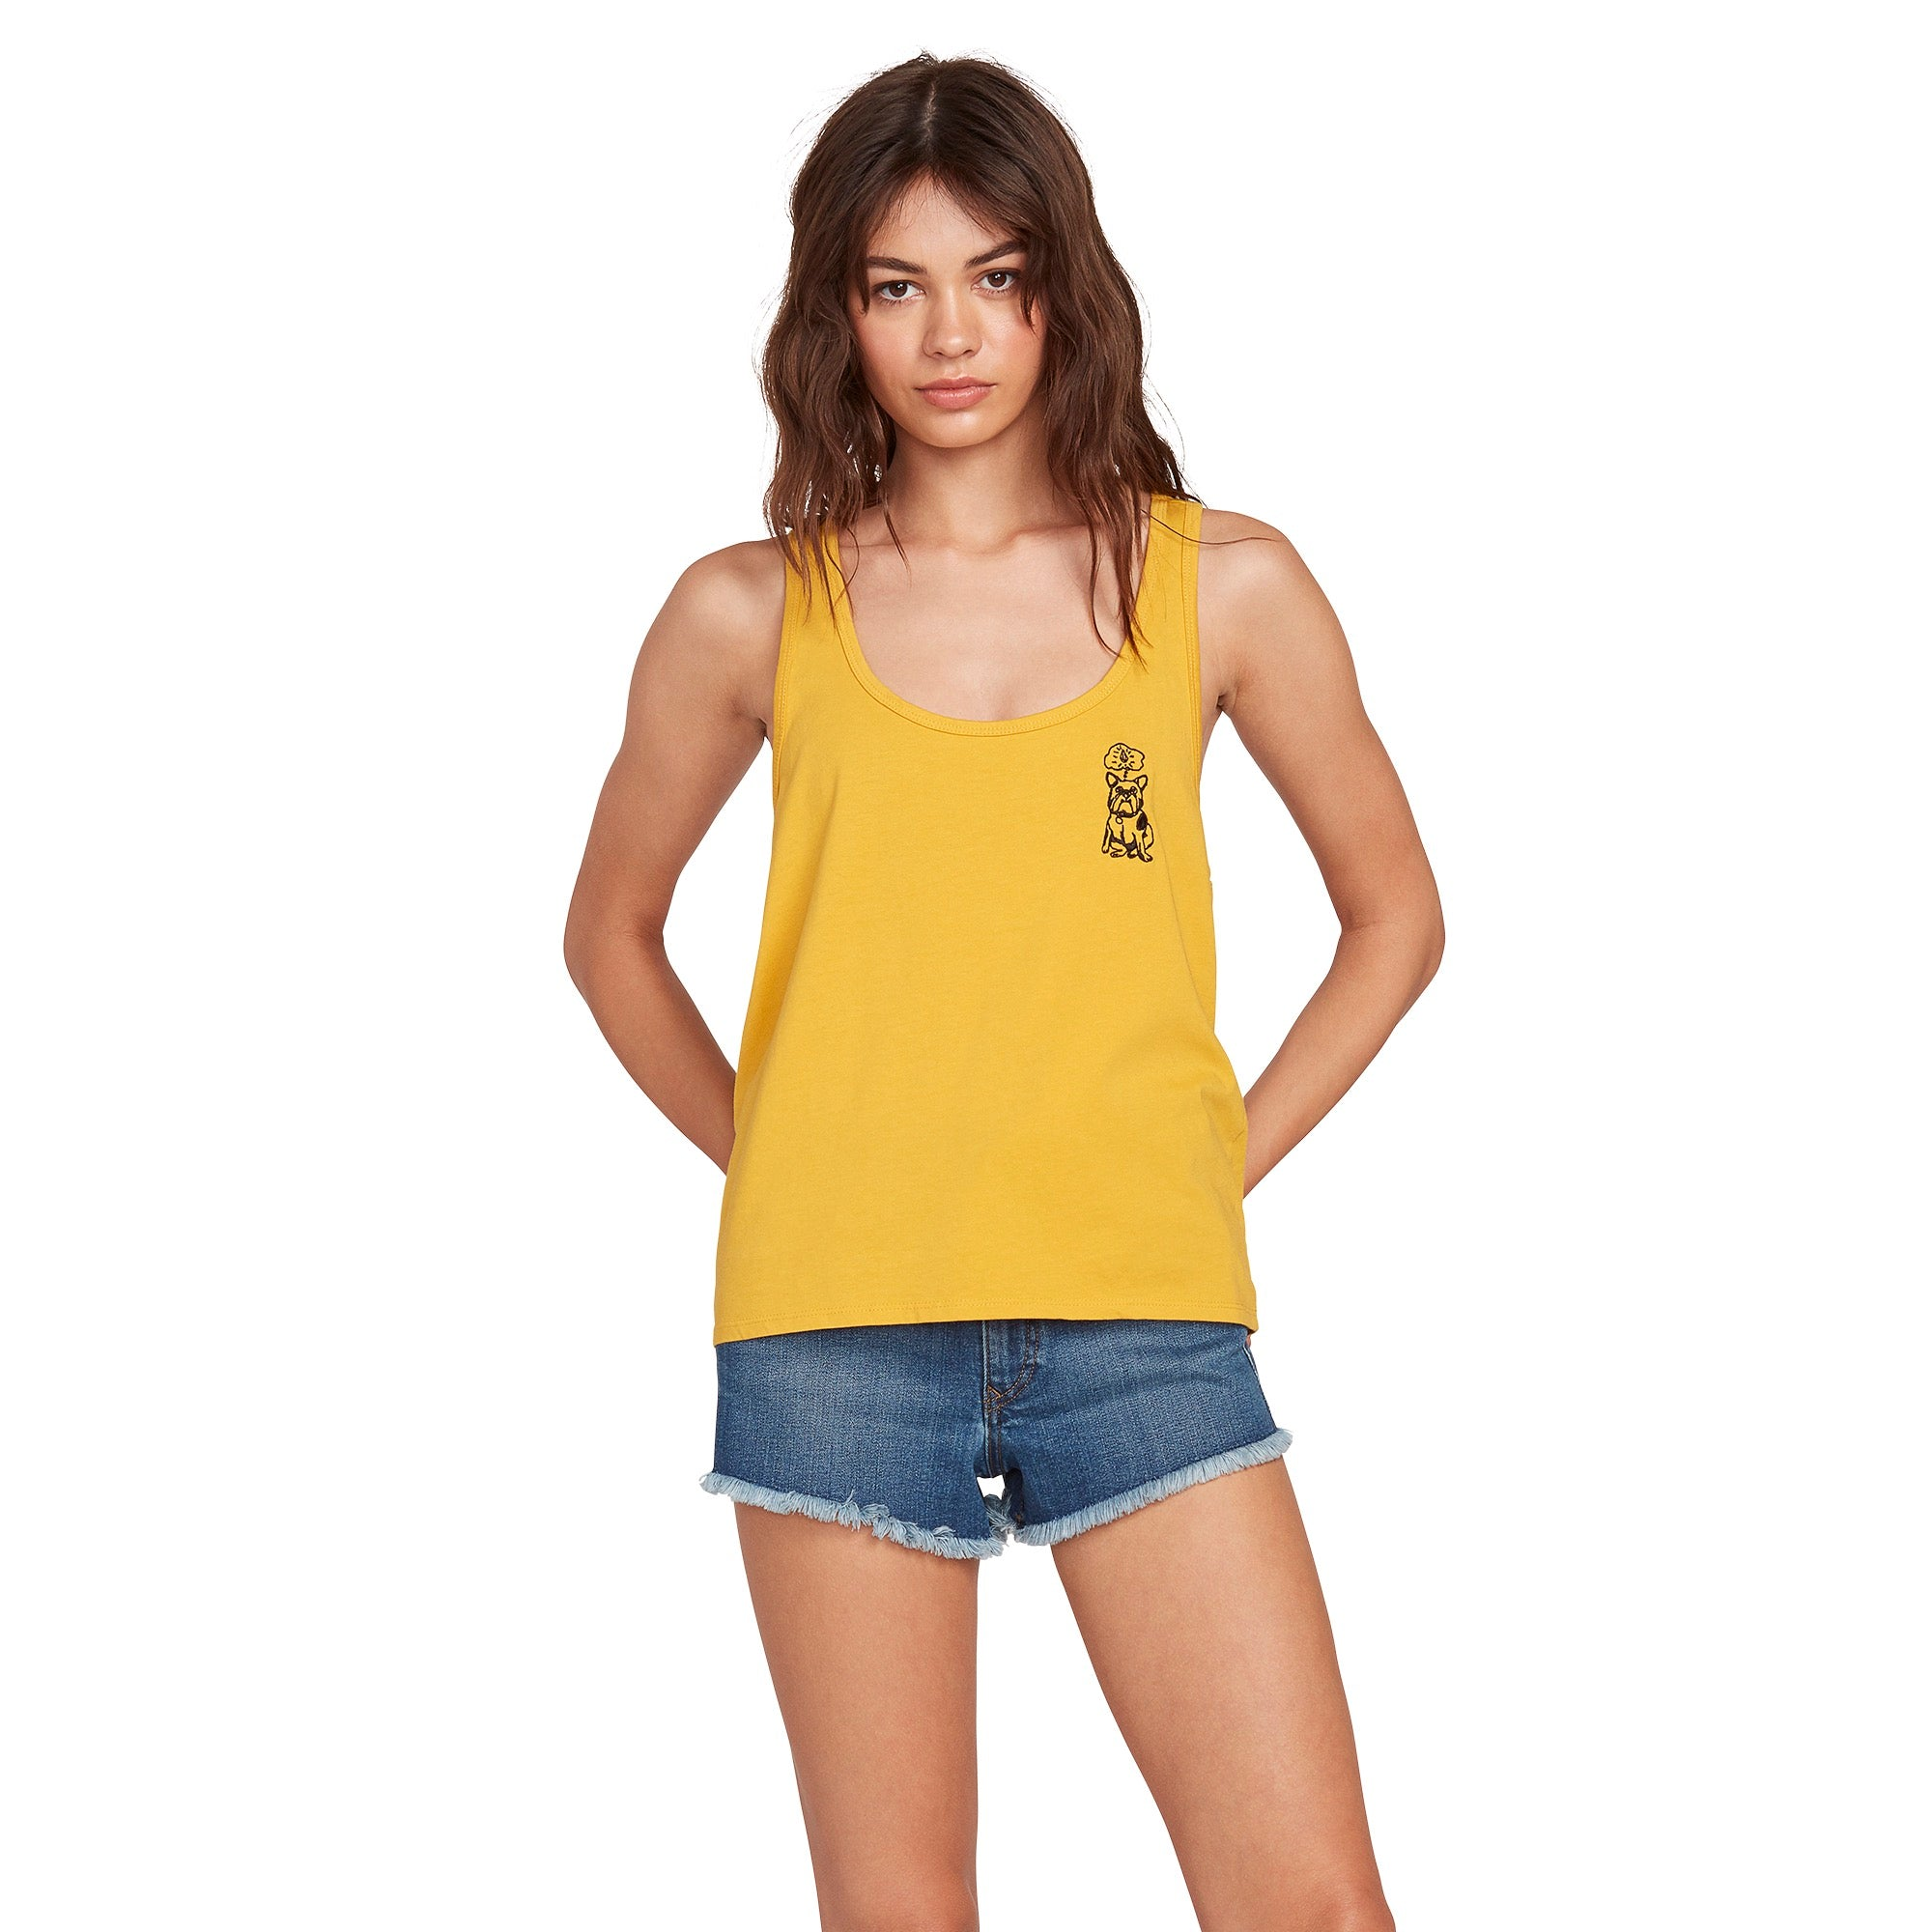 Volcom Palm Stone Breezin Tank Top - 88 Gear